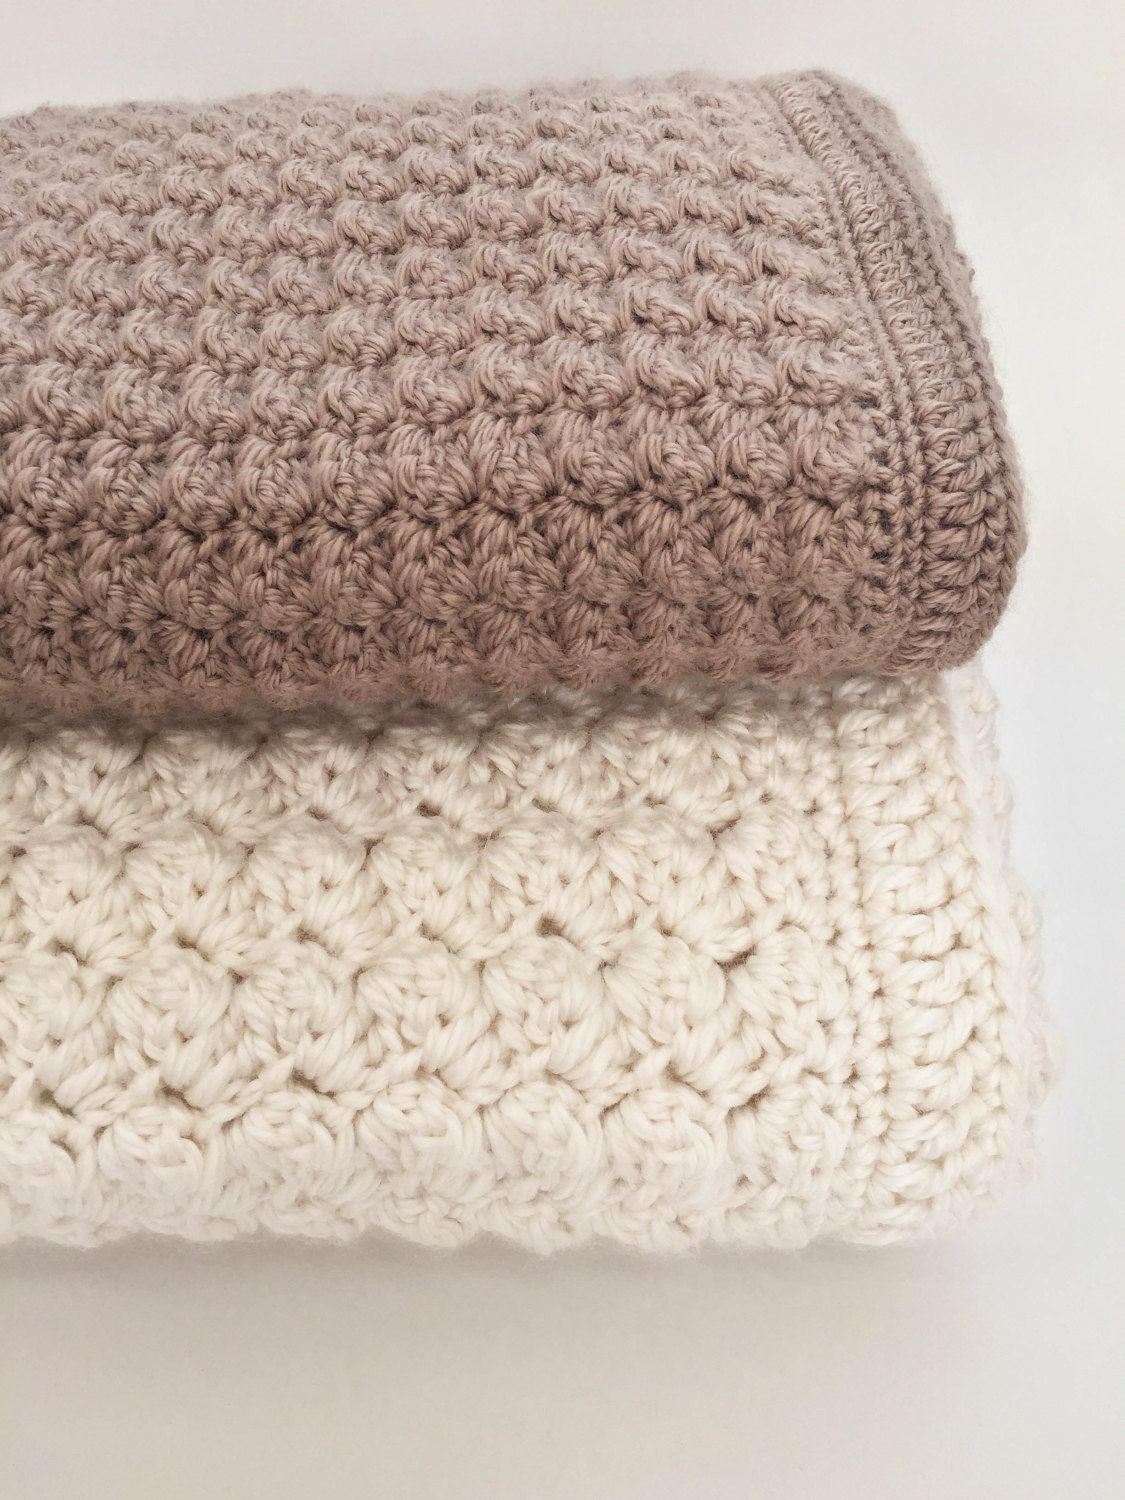 crochet baby blanket pattern  chunky crochet baby blanket  bulky  - chunky crochet baby blanket would be a dreamy addition to any nursery ithas options